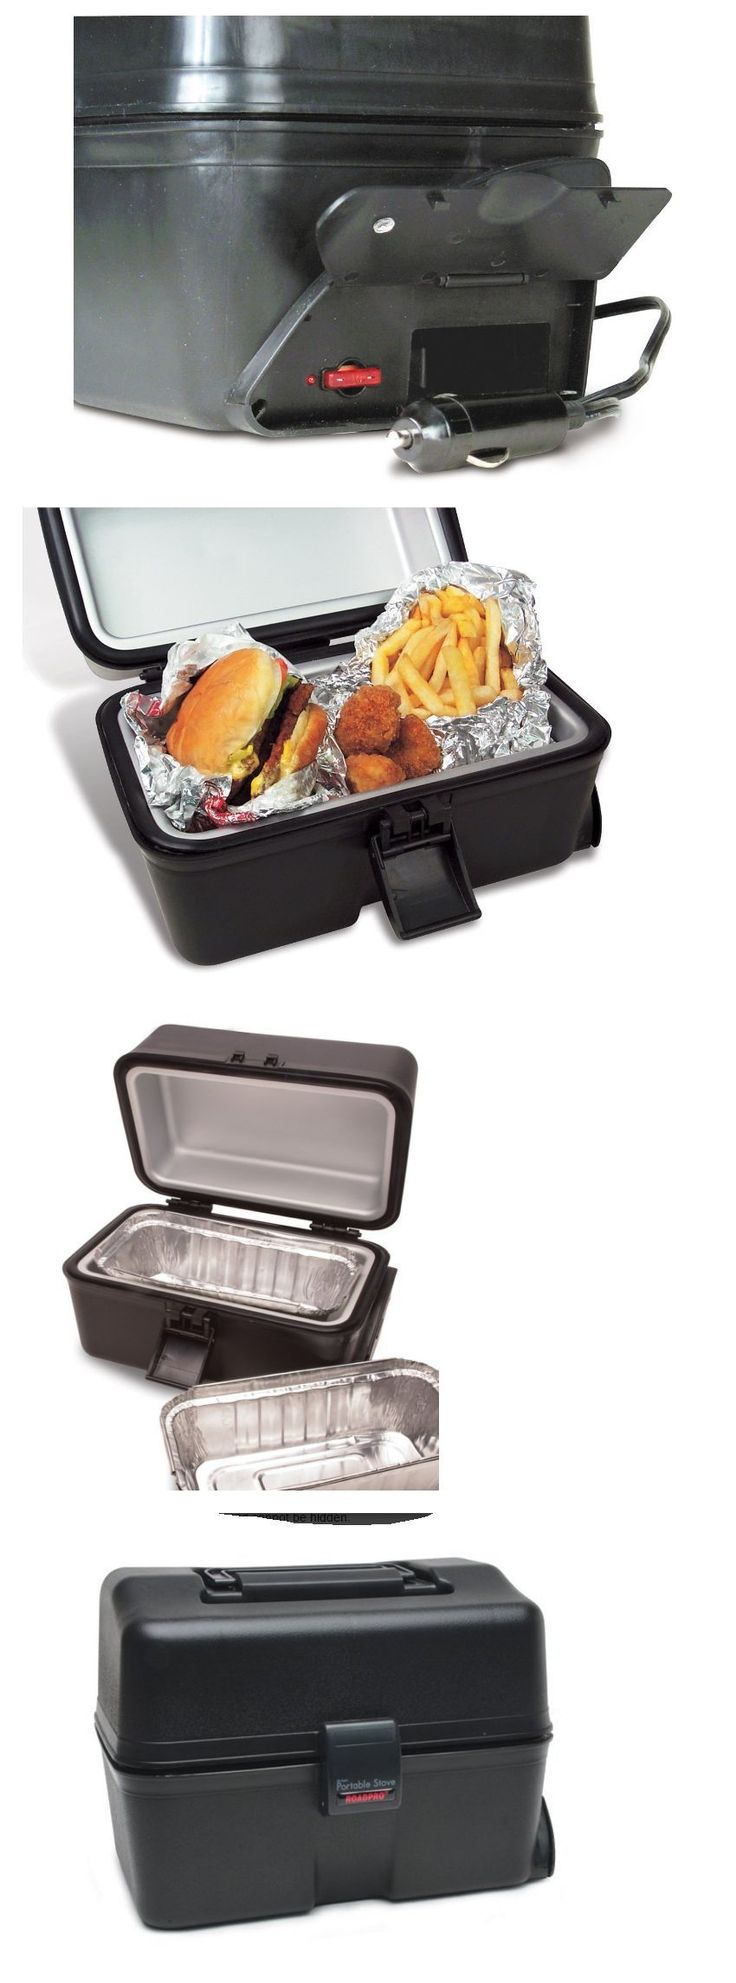 Electric Rv Stove And Oven ~ Best ideas about portable stove on pinterest